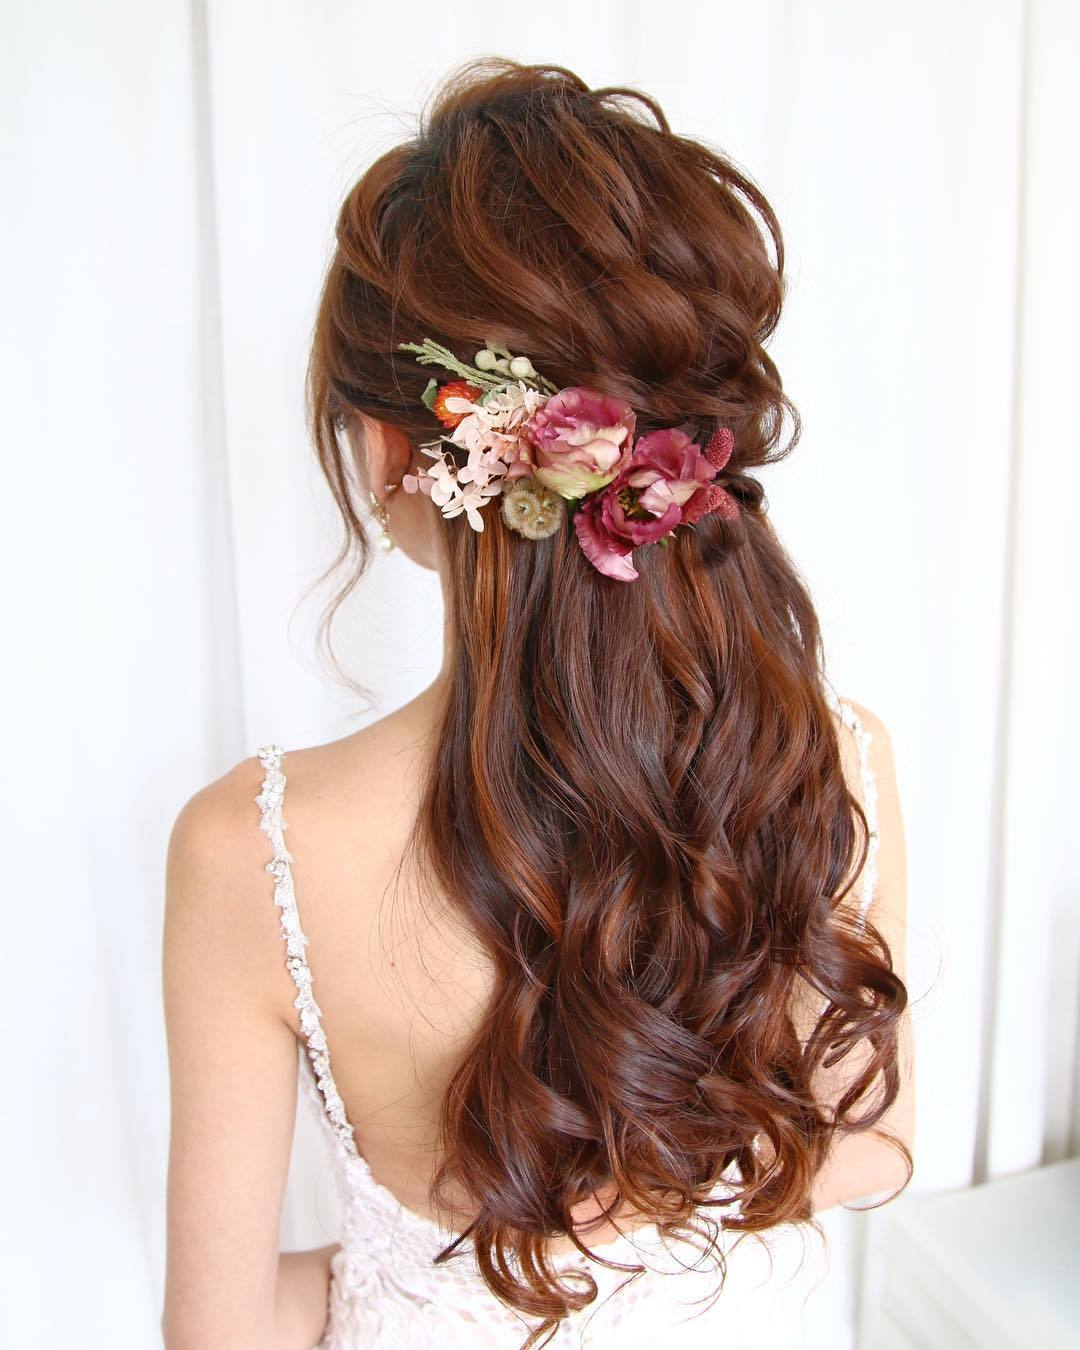 23 Stunning Half-Up, Half-Down Wedding Hairstyles